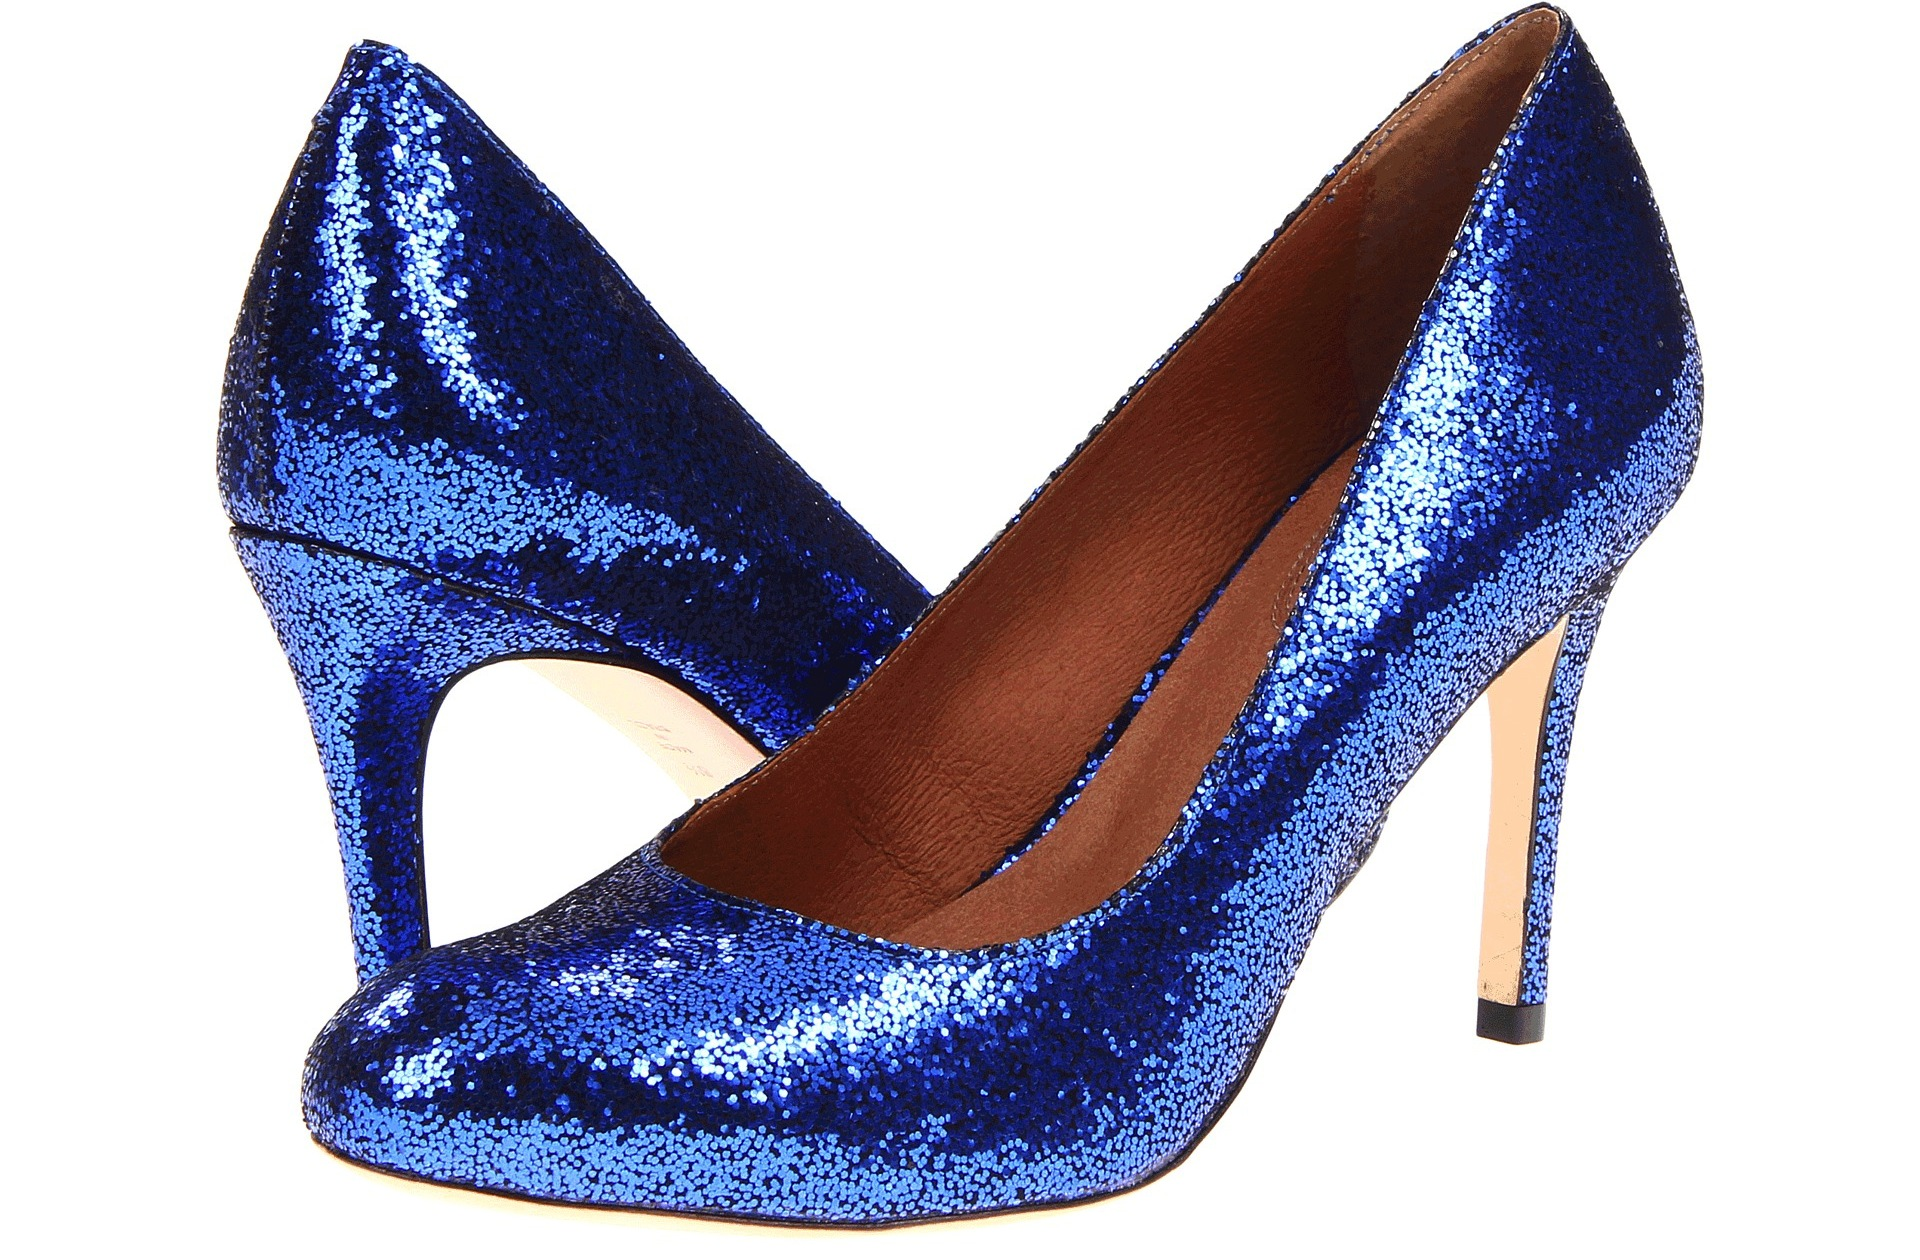 Glittery Blue Wedding Shoes With Gold Heels